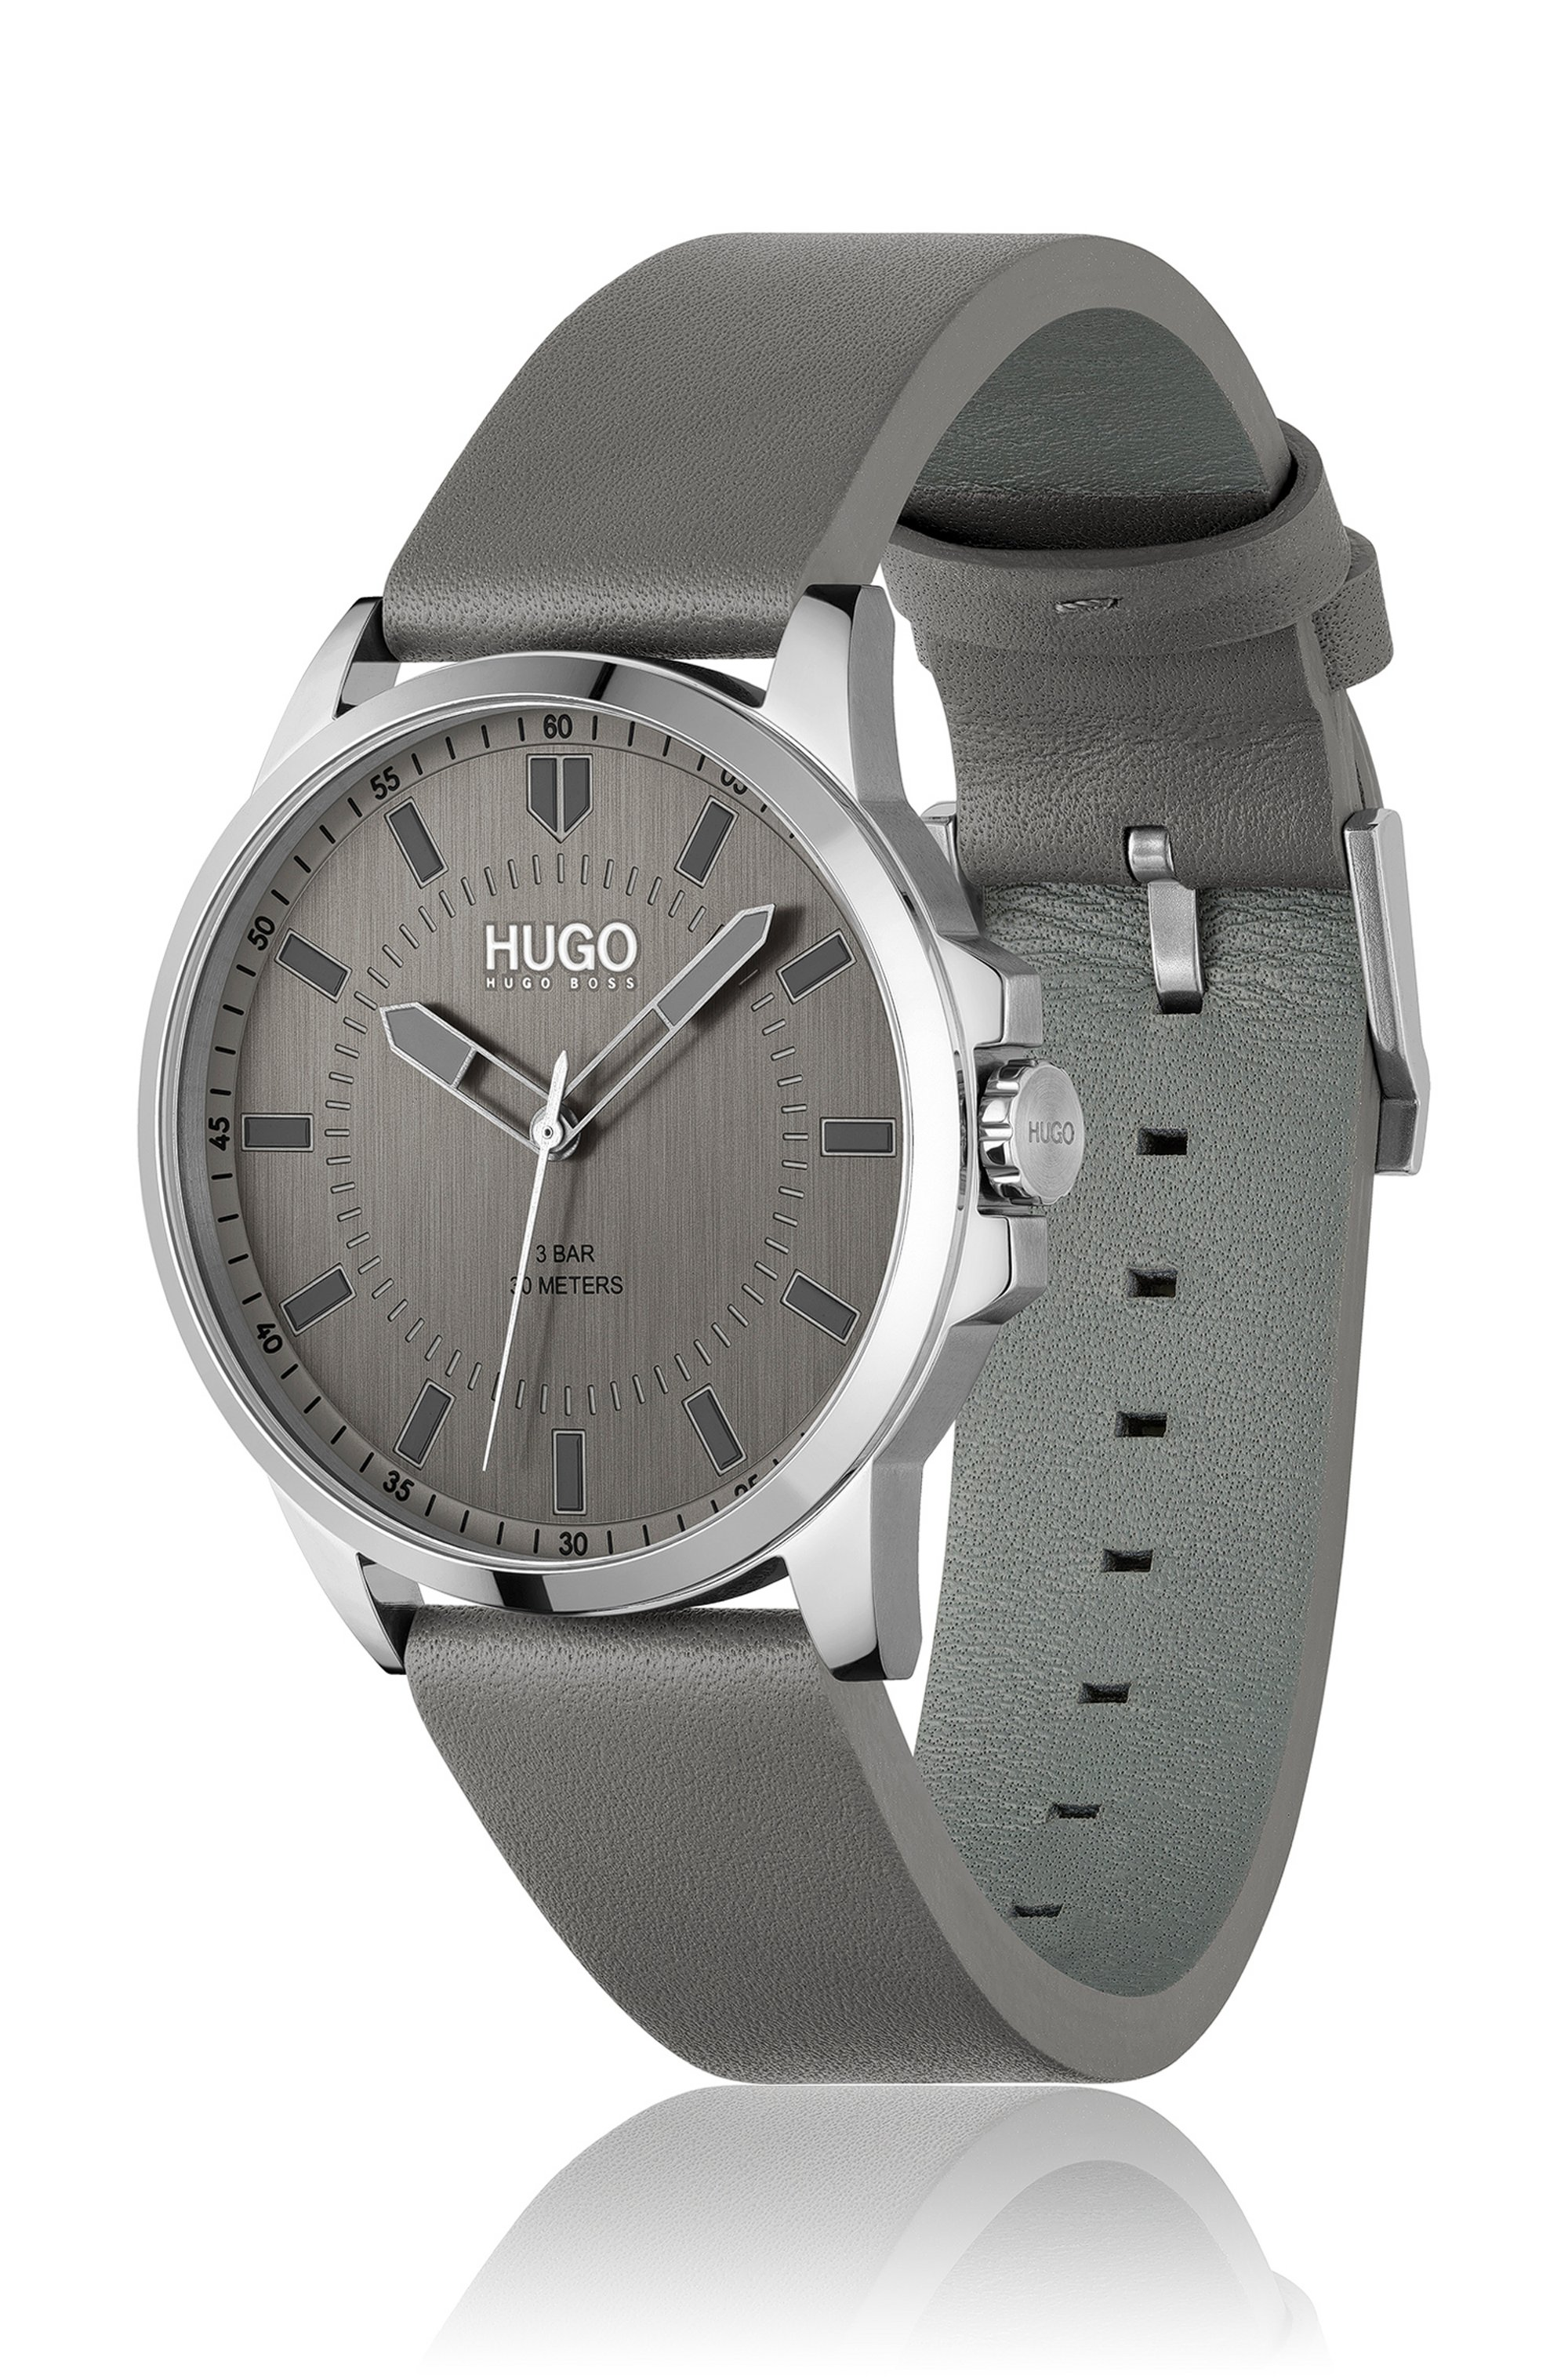 Leather-strap watch with grey dial